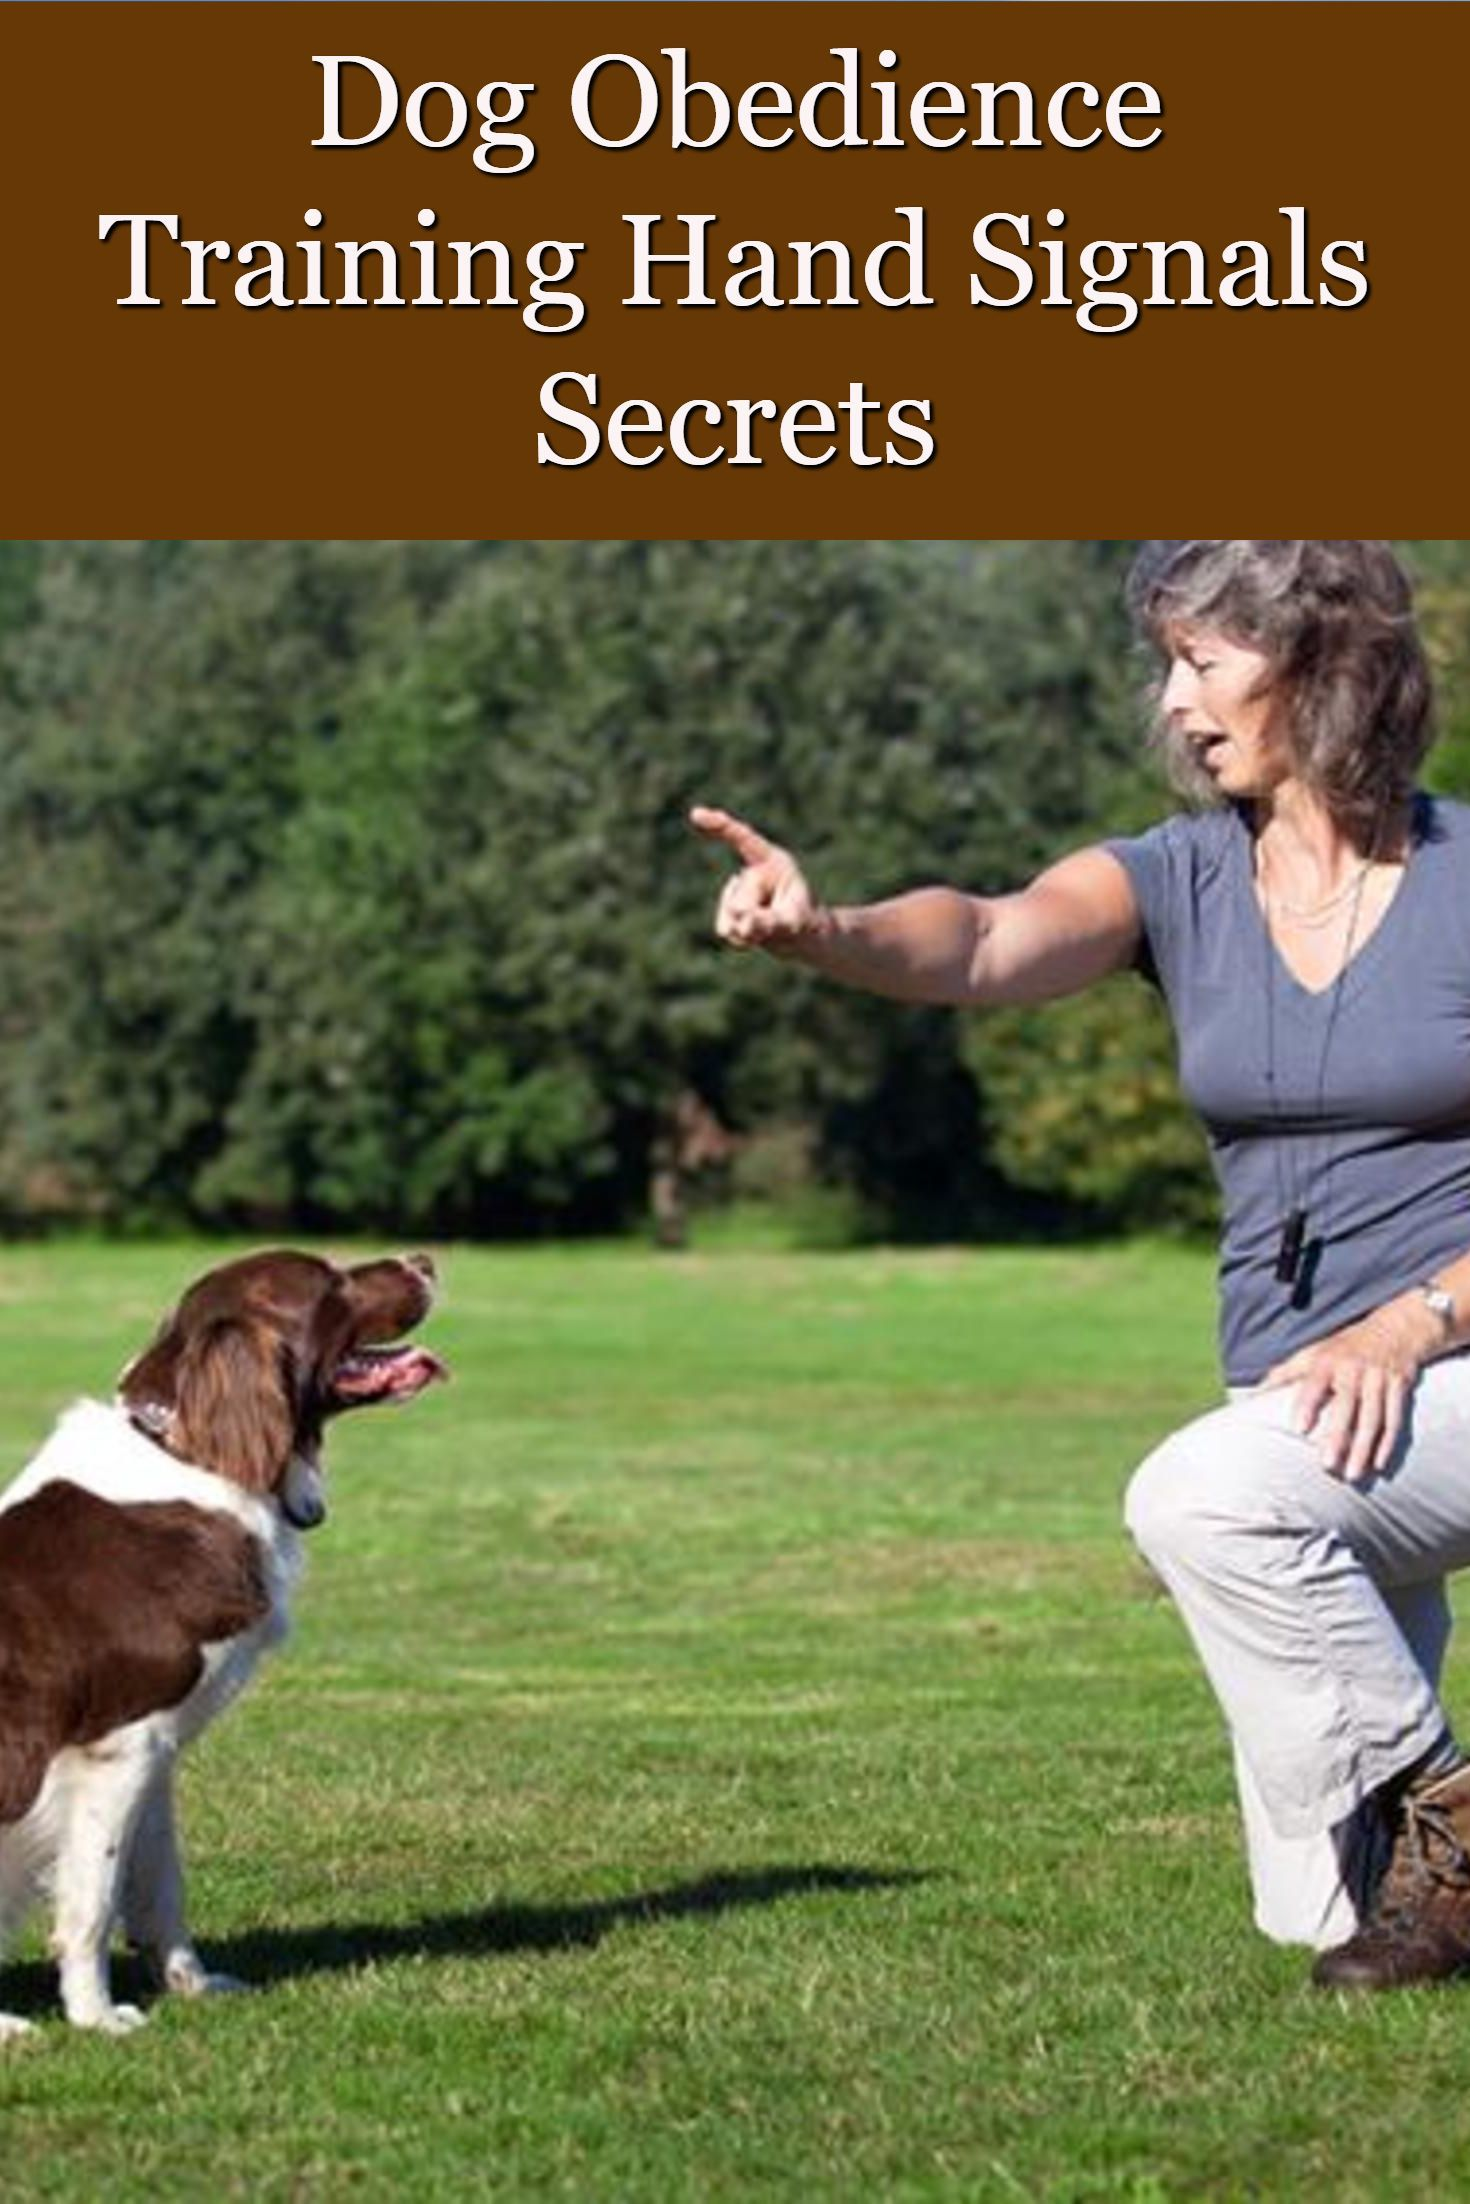 Dog Training Dog Classes Dog Training Funny Dogs